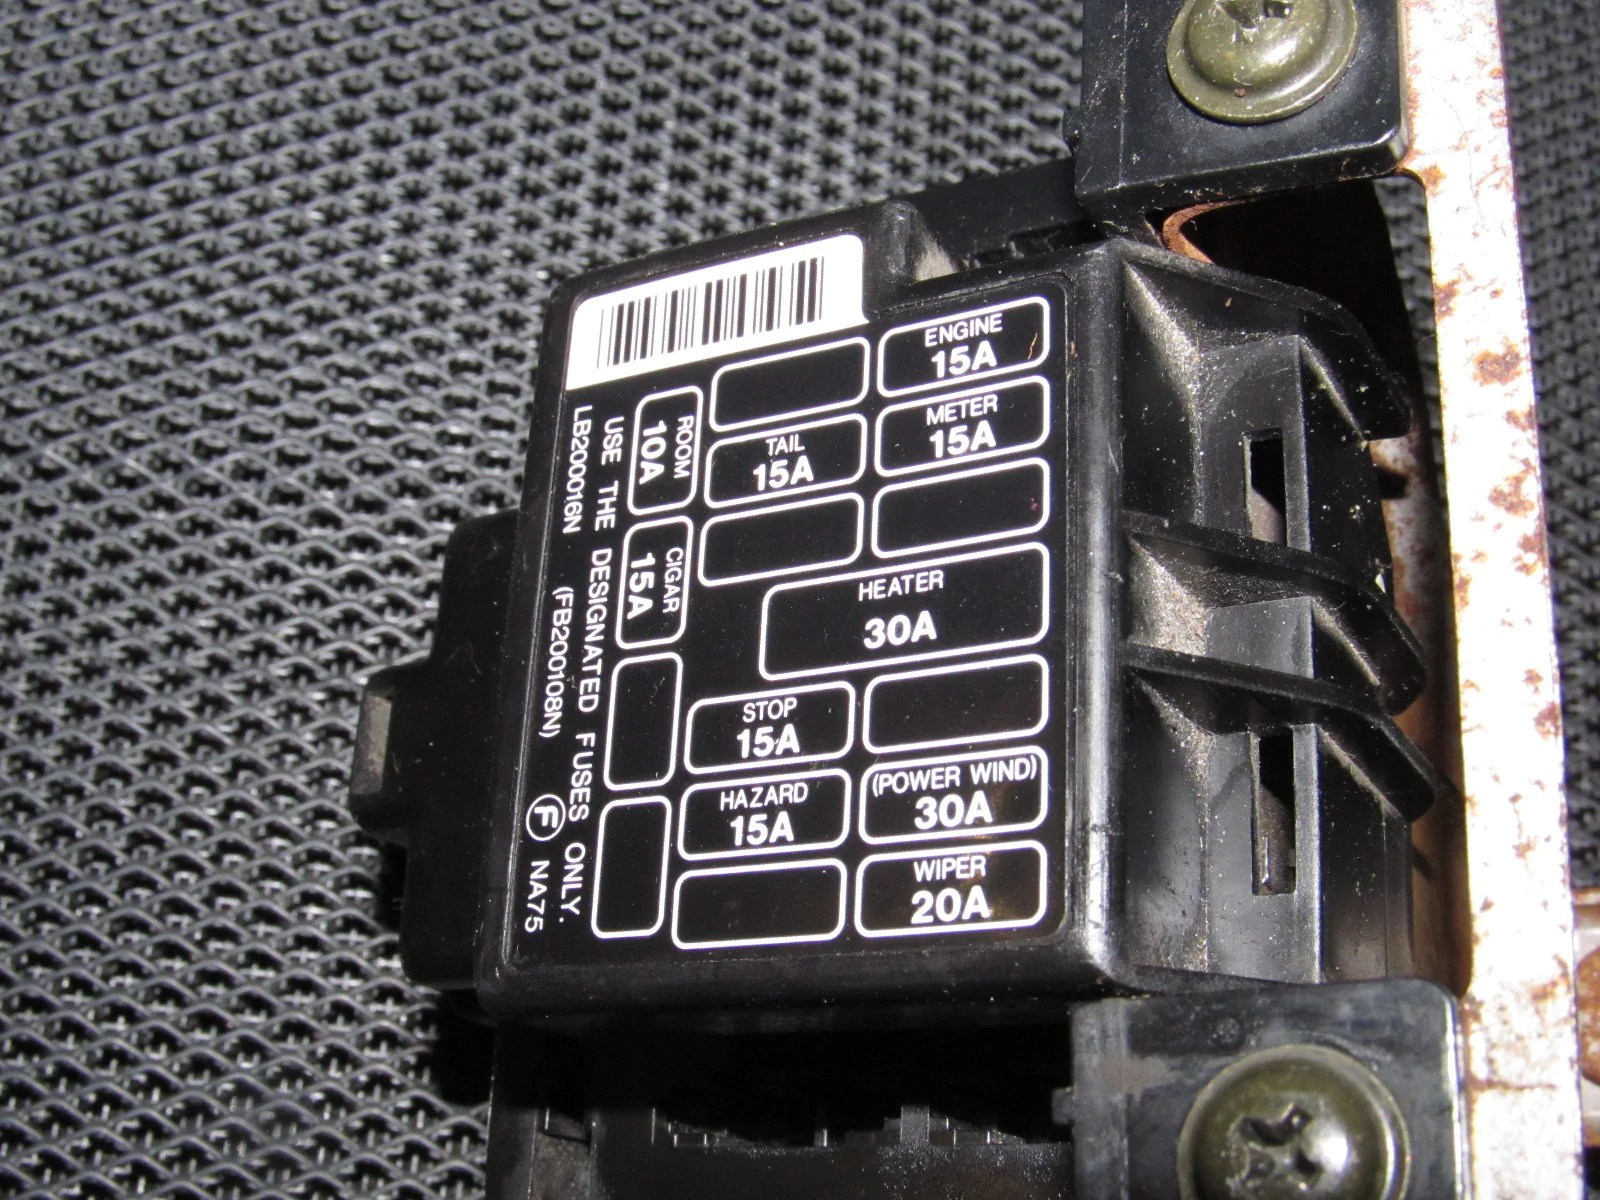 medium resolution of miata fuse box electrical wiring diagram94 95 96 97 mazda miata oem interior fuse box